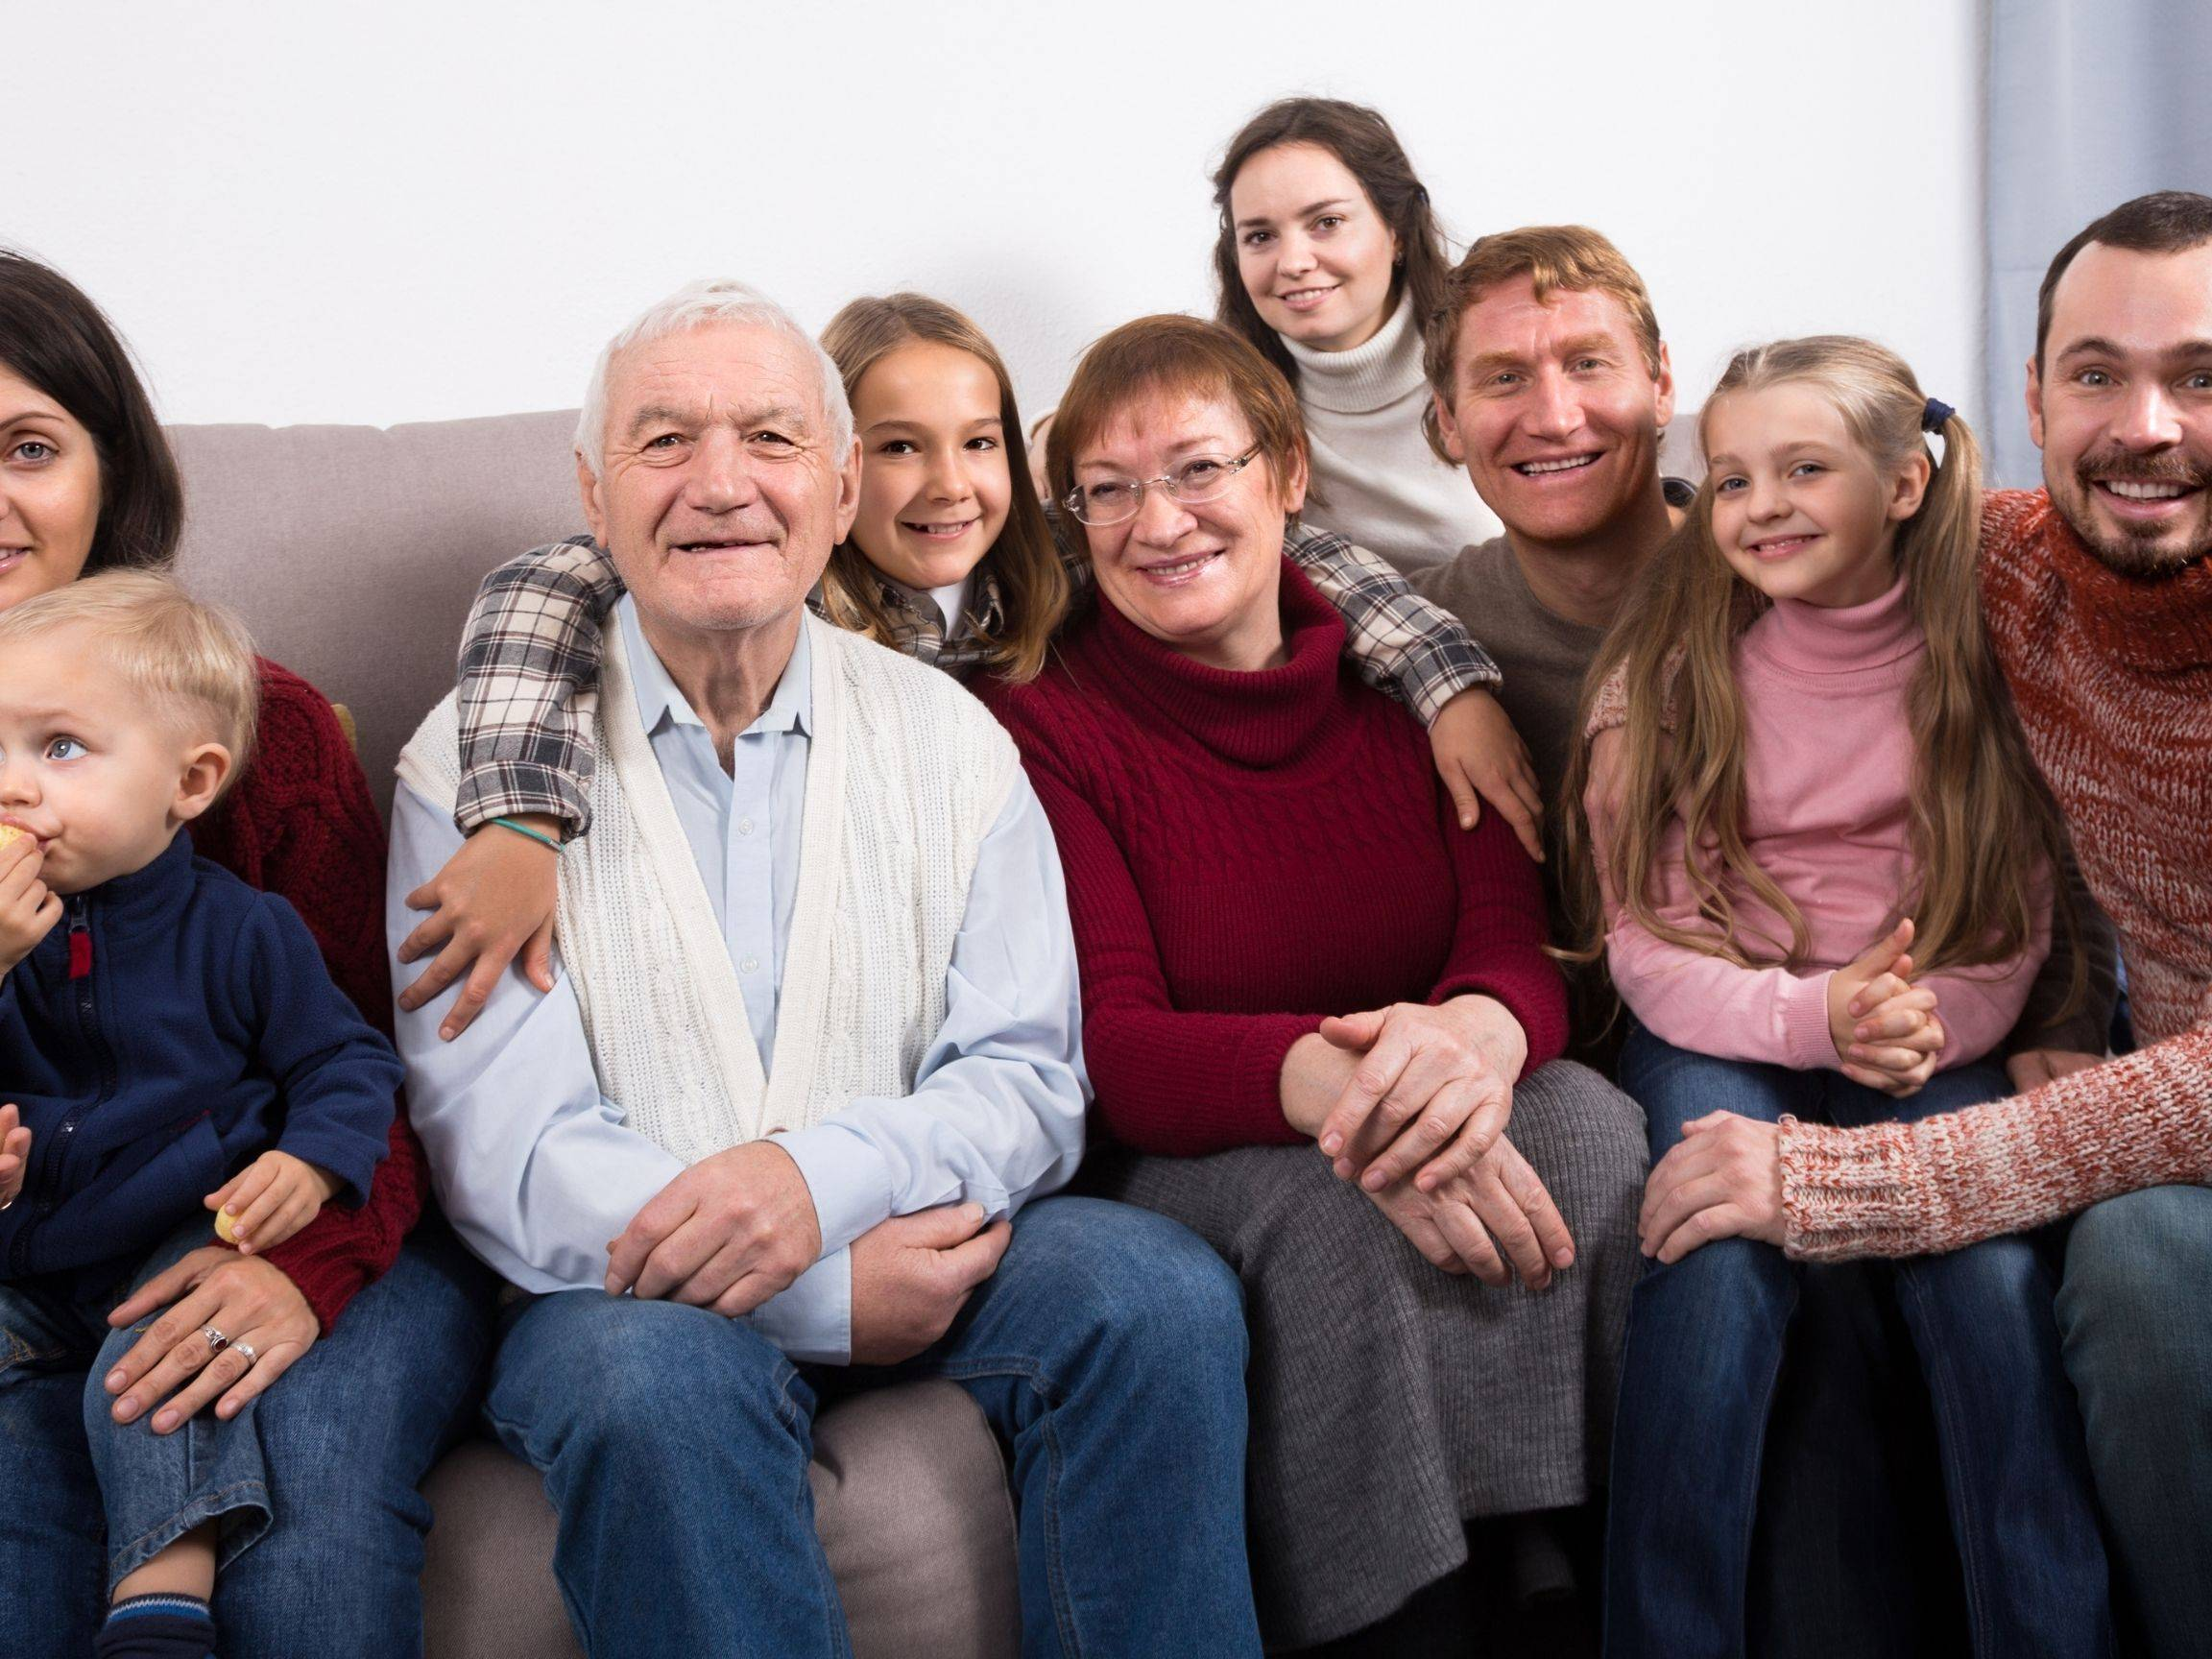 Extended family sitting together and surrounding Dad